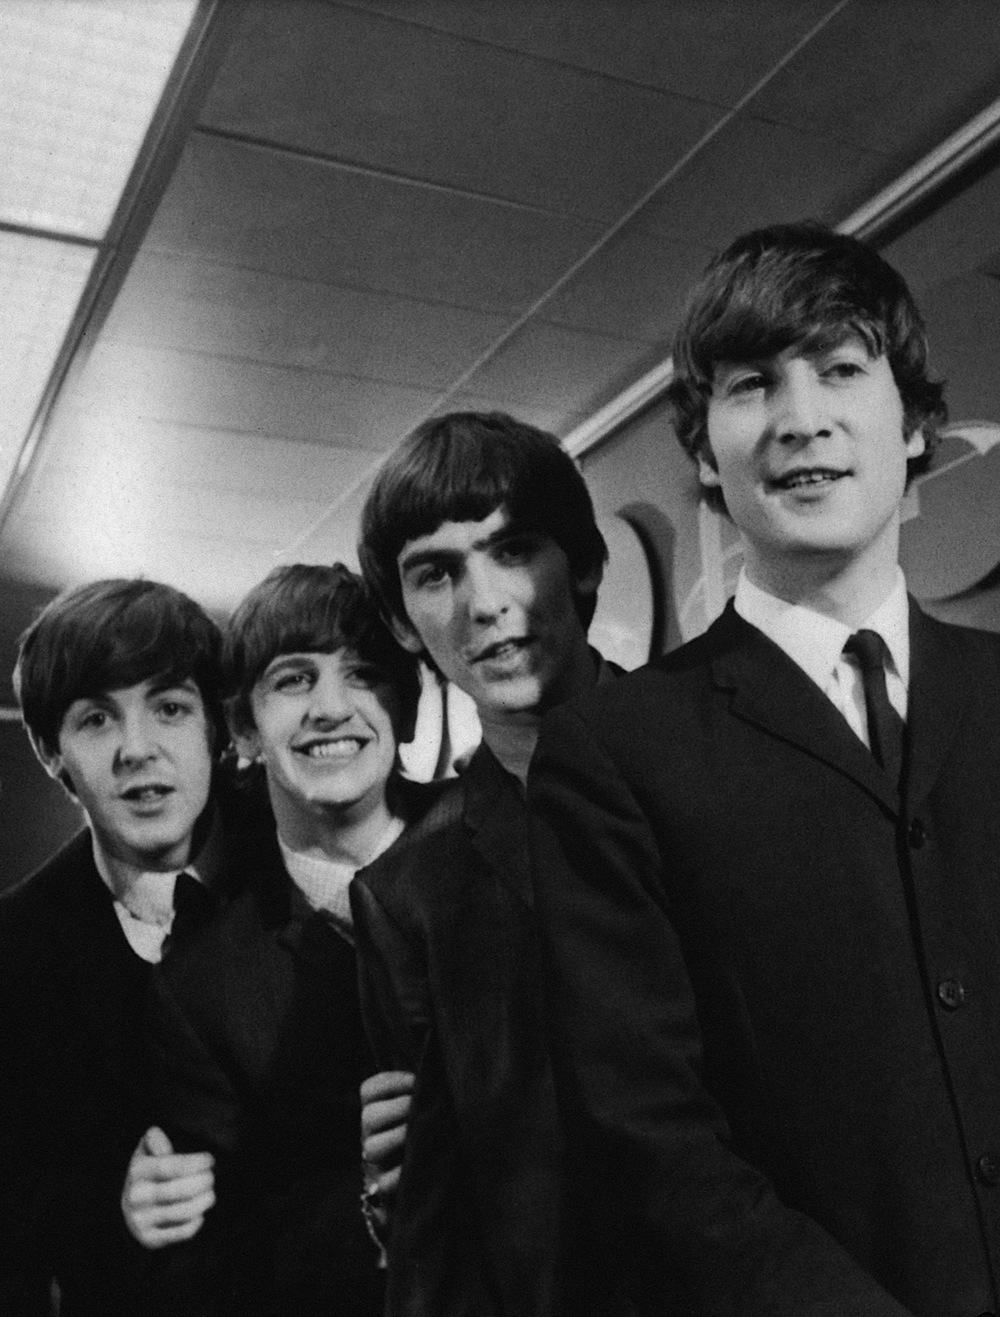 The Beatles at a press conference in America, 1964.